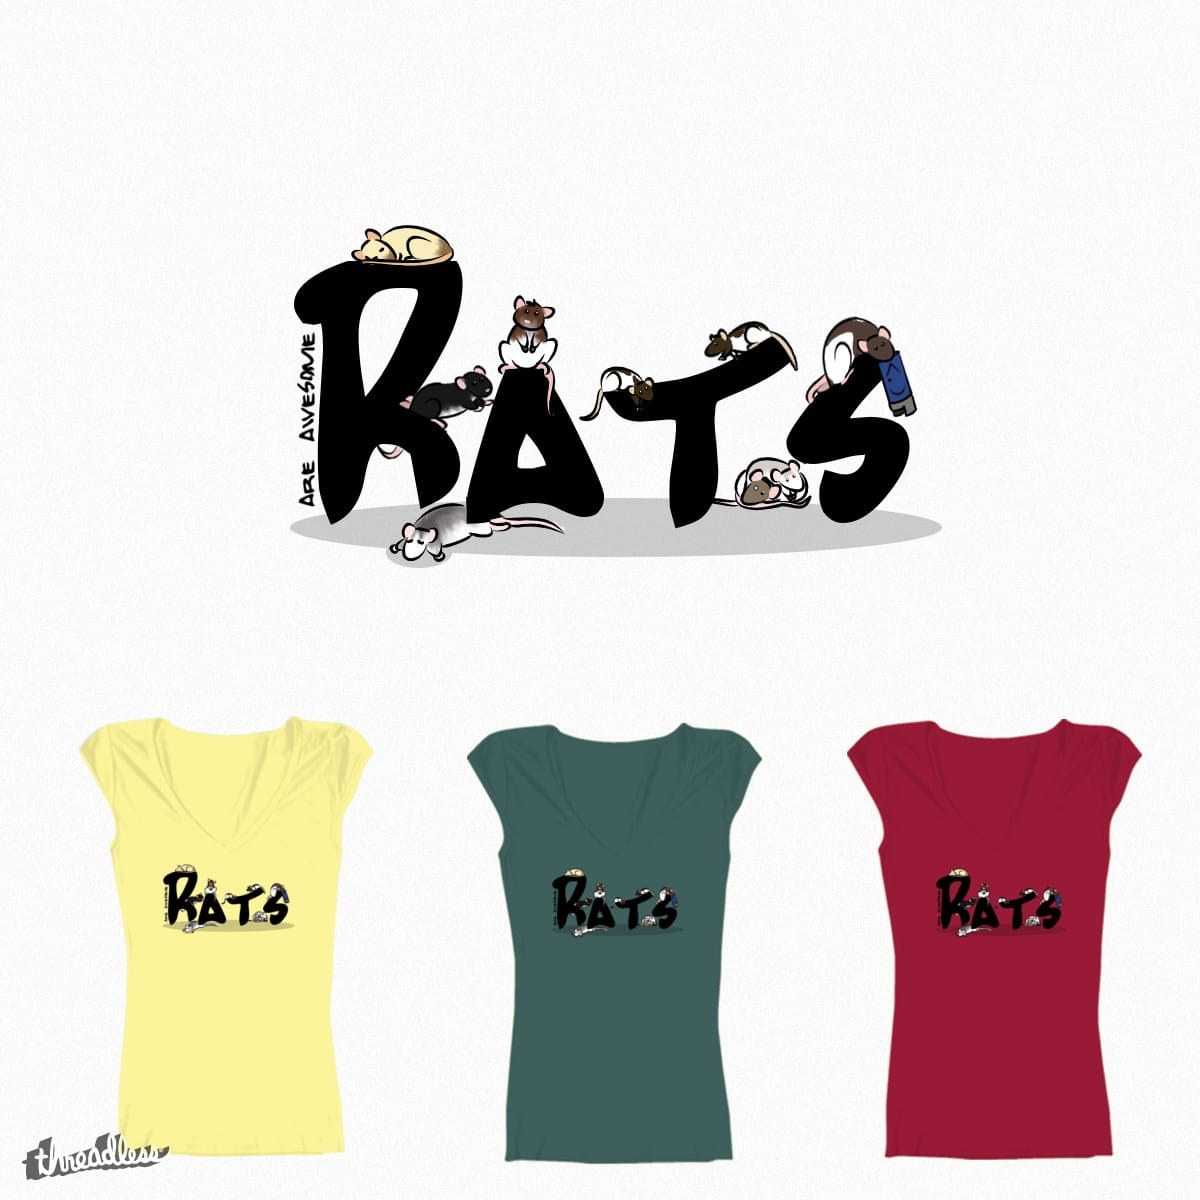 (Pet)Rats are awesome by Kipke on Threadless